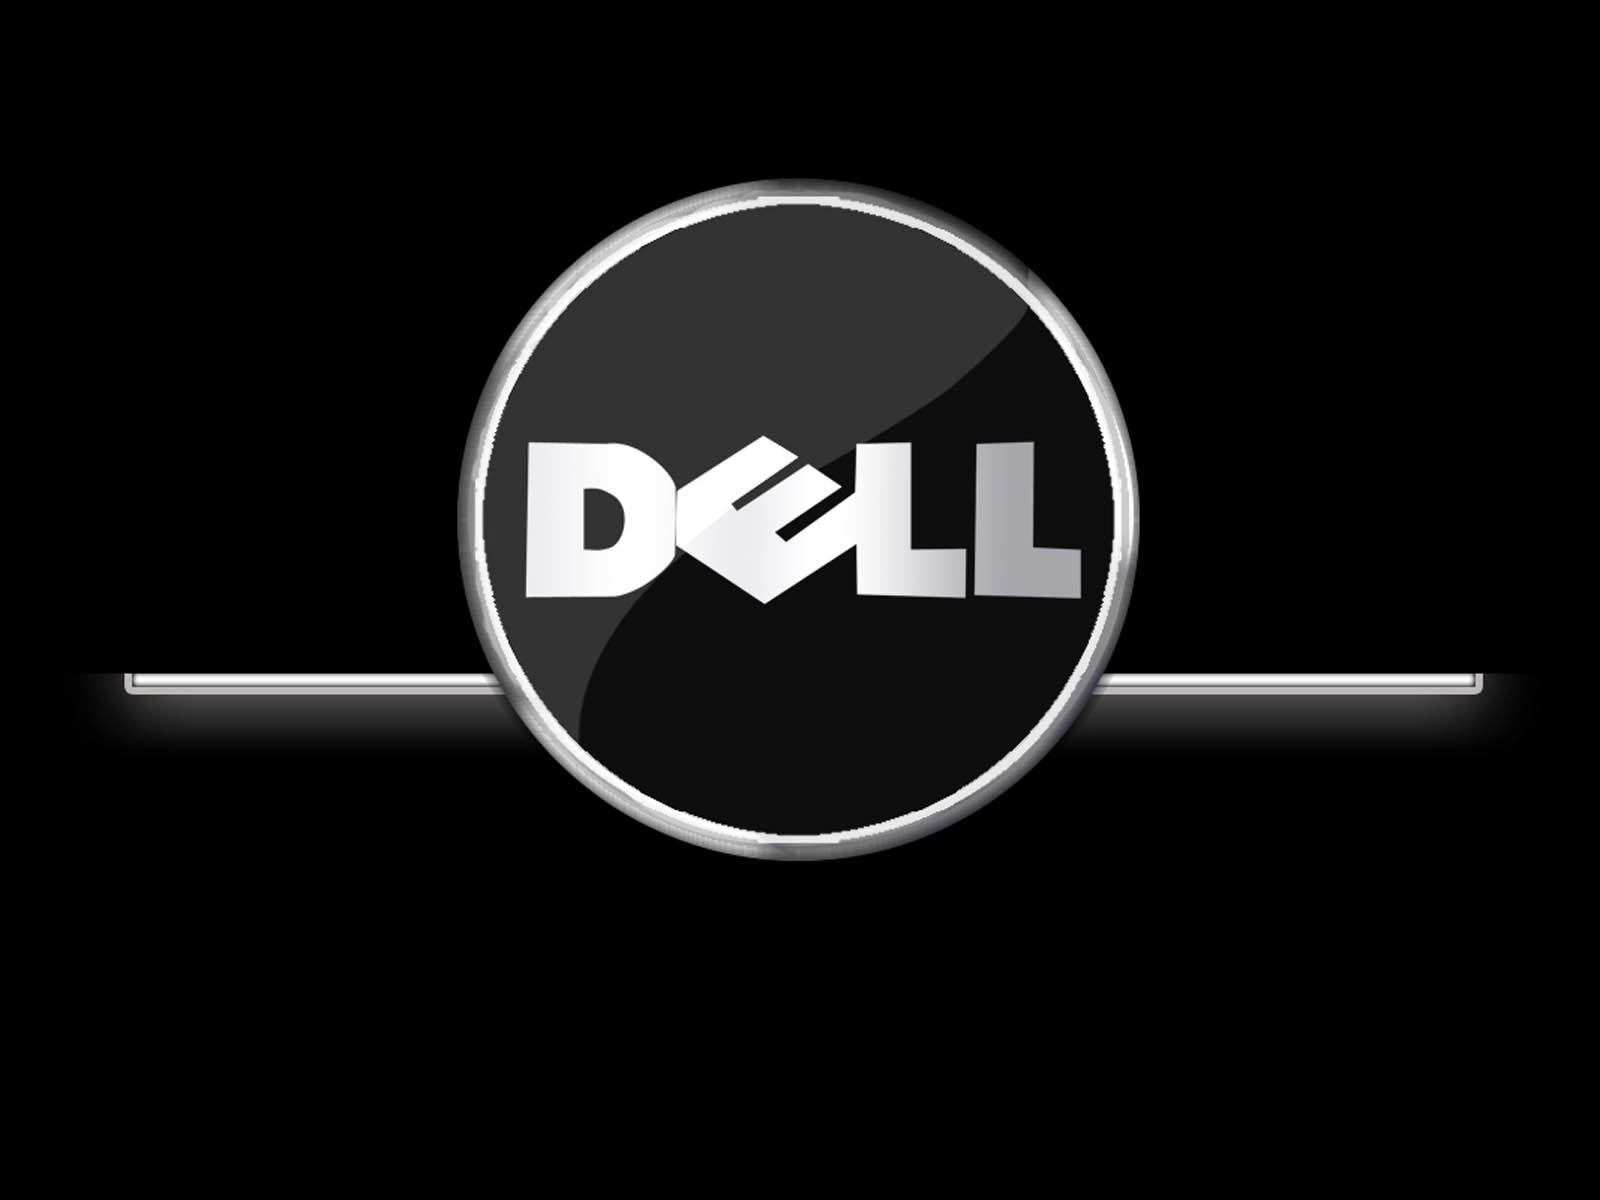 Tag: Dell Desktop Wallpapers, Images, Photos, Pictures and Backgrounds